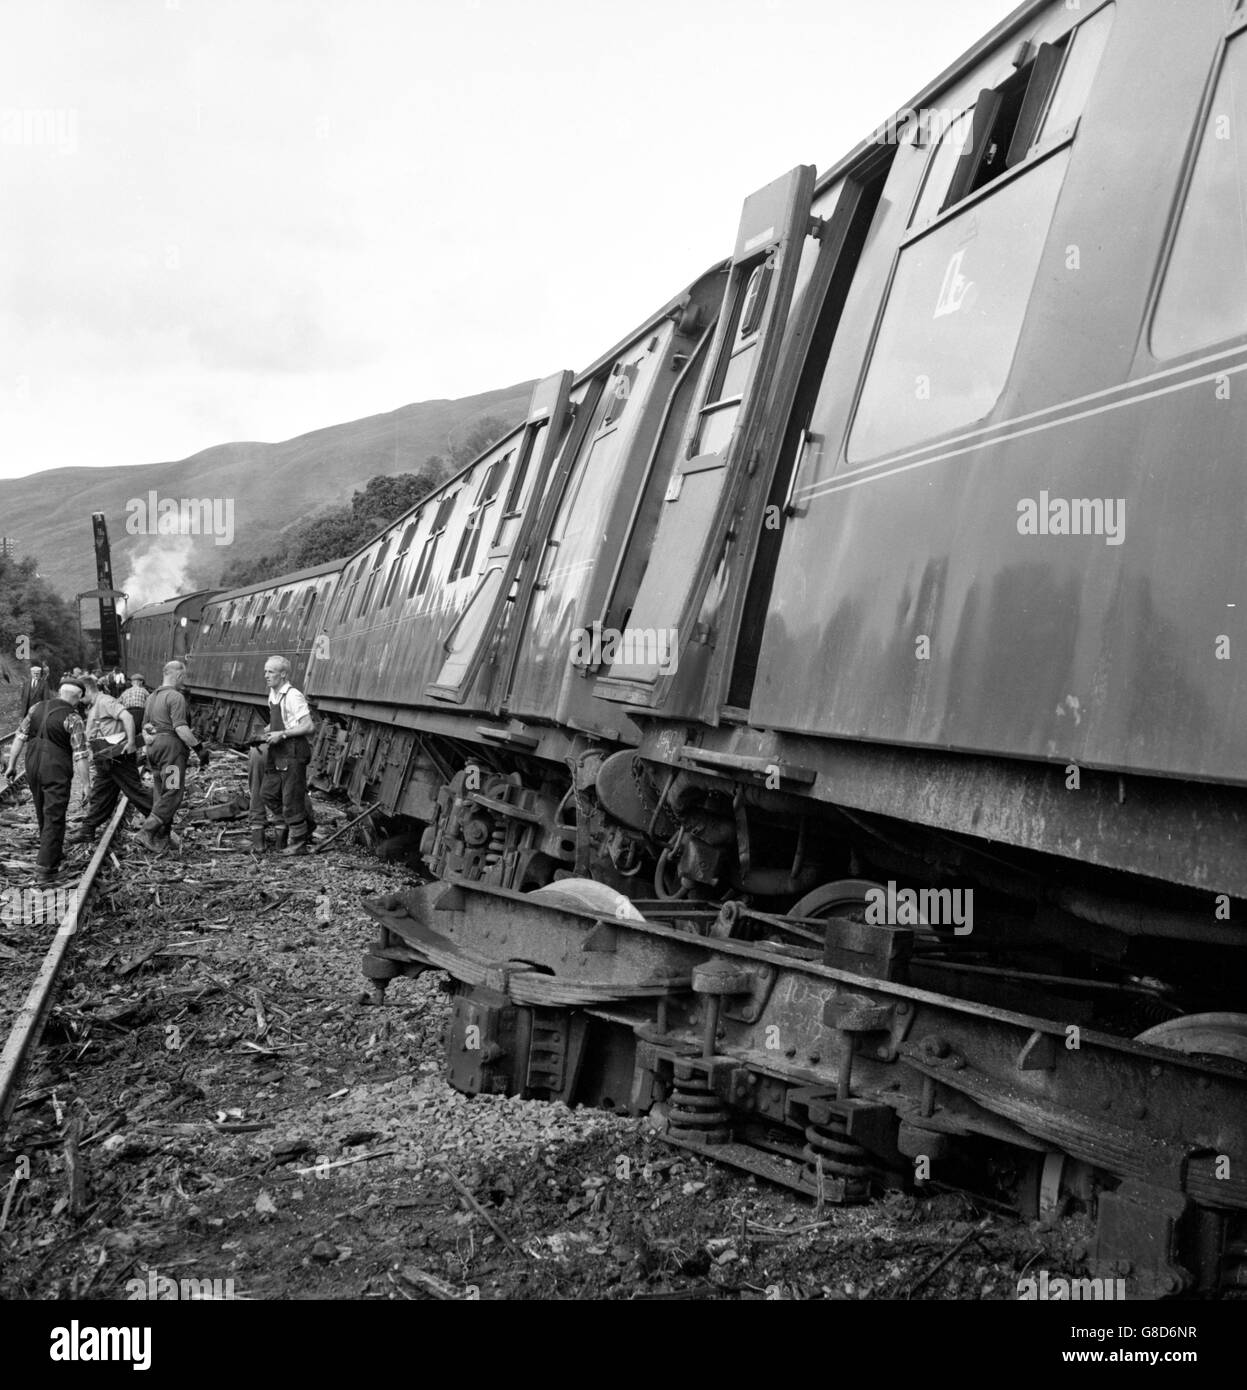 Disasters and Accidents - Landslide - Glasgow-Euston Express Train - Glenairlie Bridge, Scotland - Stock Image